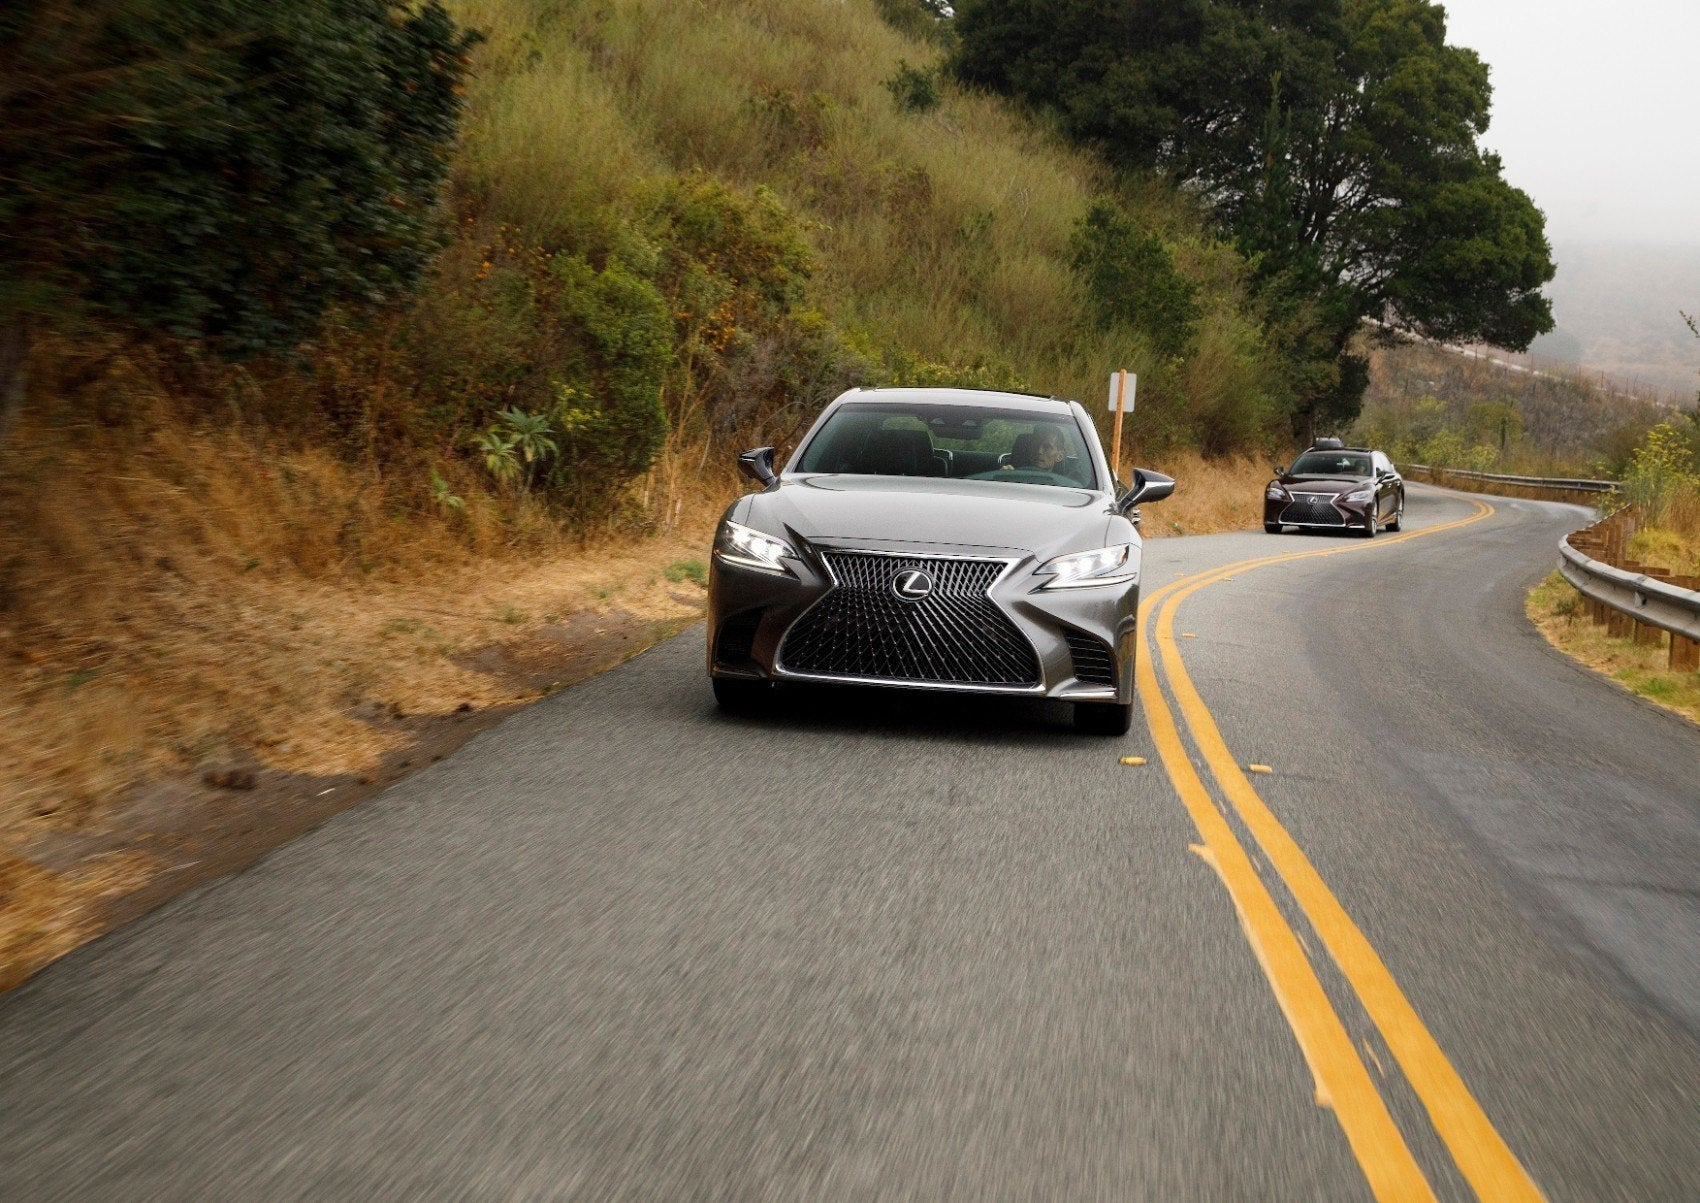 2020 Lexus LS 500 Review: Does The Price Justify This Luxury Cruiser? 16